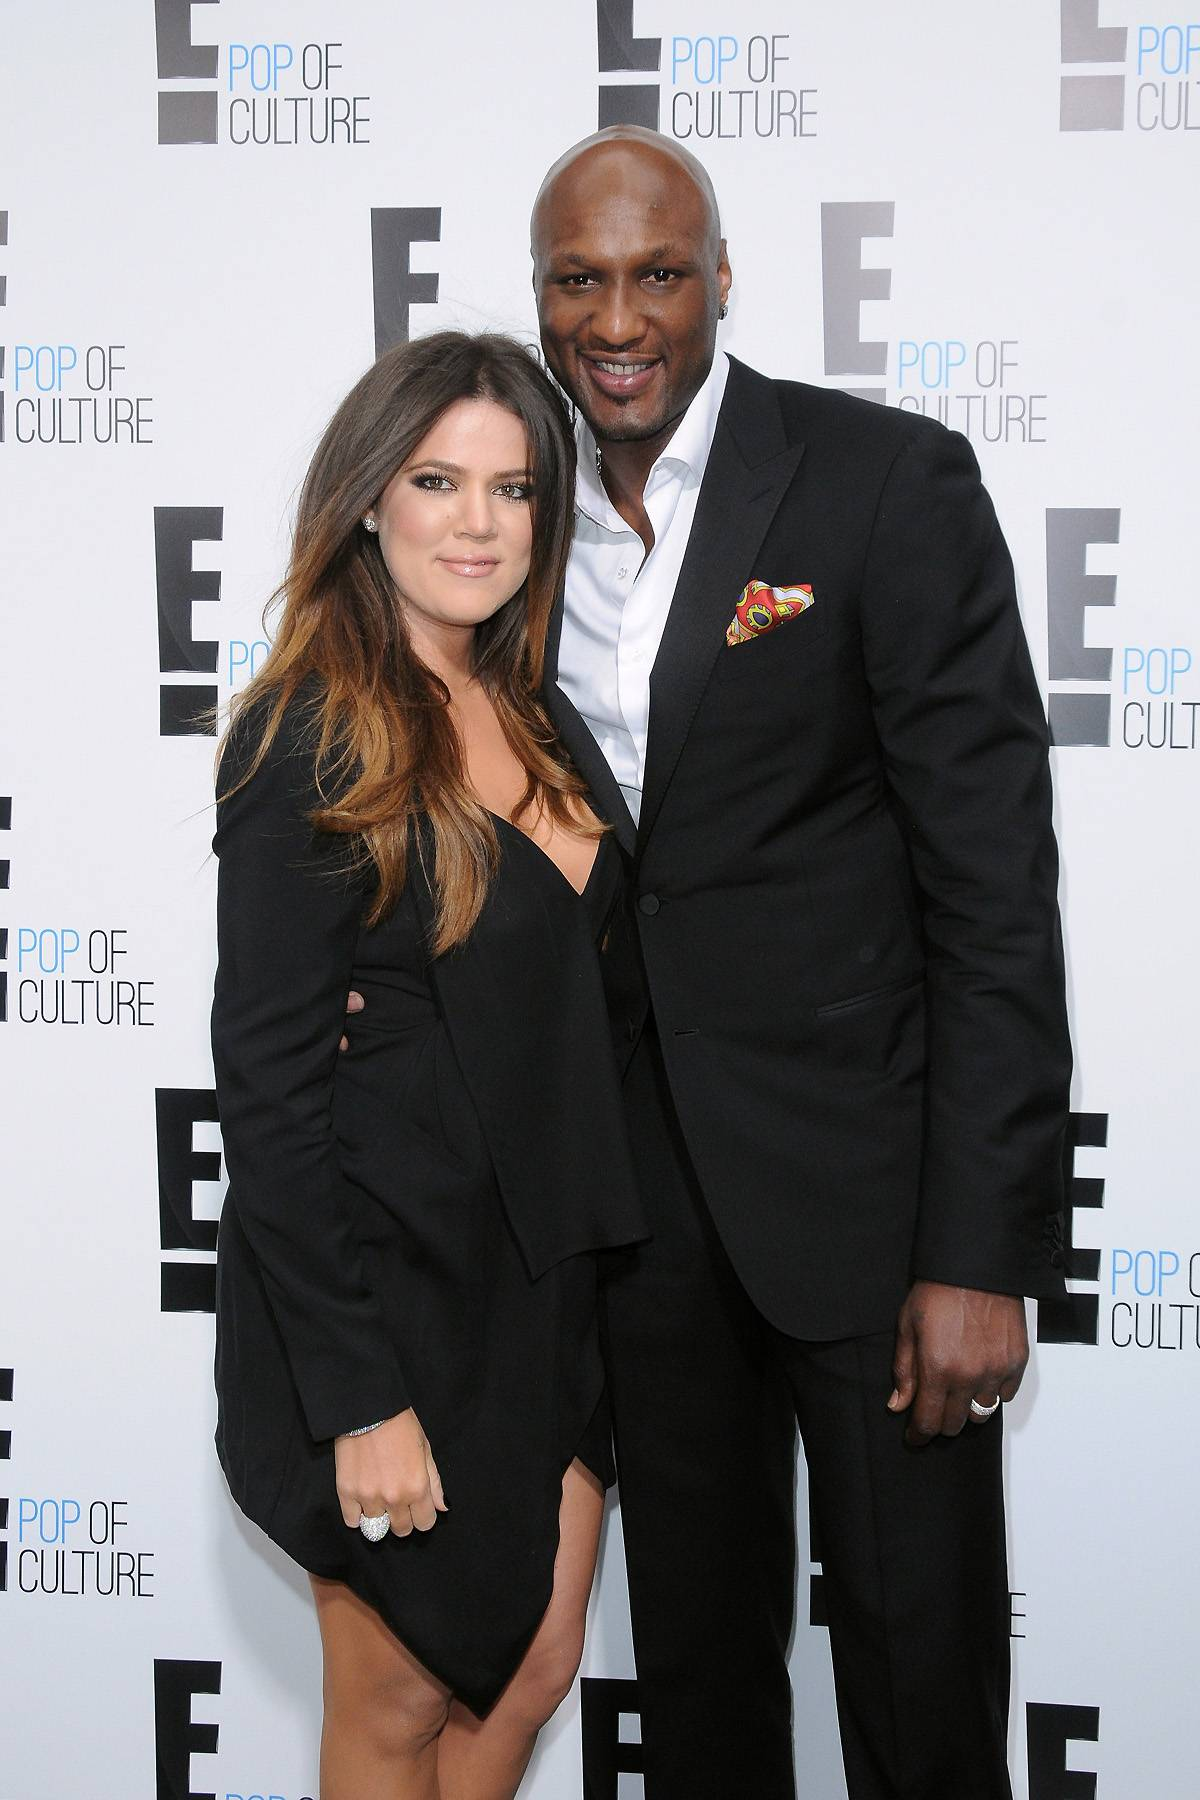 Khloe Kardashian and Lamar Odom - After months of living separate lives, this once-unbreakable couple finally bit the dust. Khloe and Lamar have been estranged since news of his infidelities and drug use hit the web this past June, and by December 13, the reality star pulled the trigger and filed for divorce. Hopefully the new year will bring a fresh start to both.  (Photo: Ivan Nikolov/WENN.com)